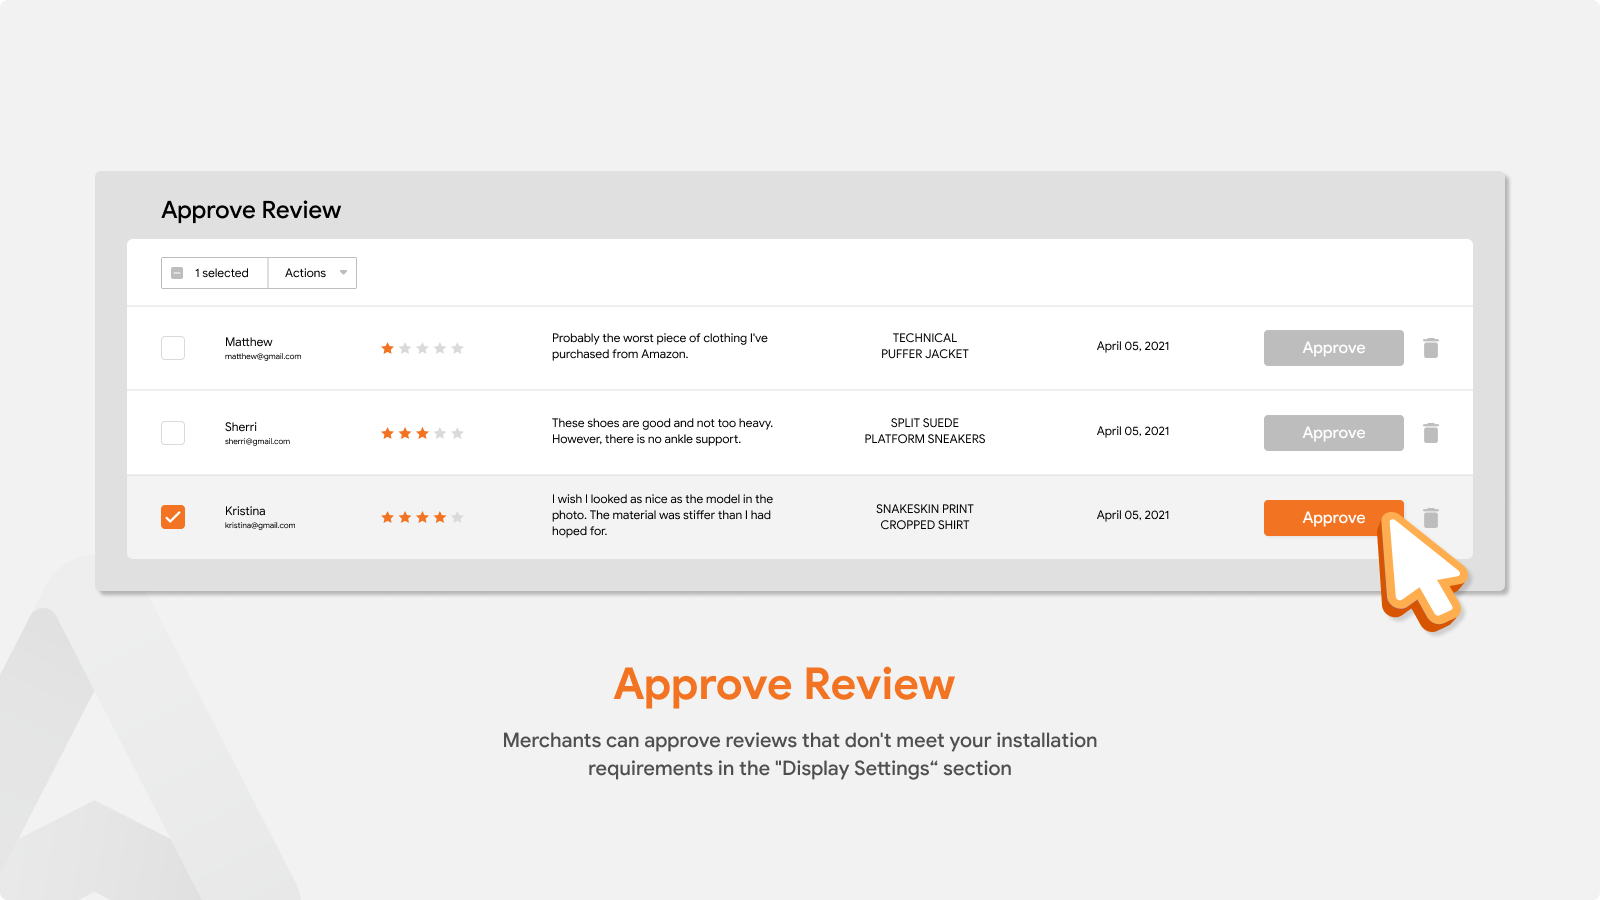 Product Reviews App For Approve Review